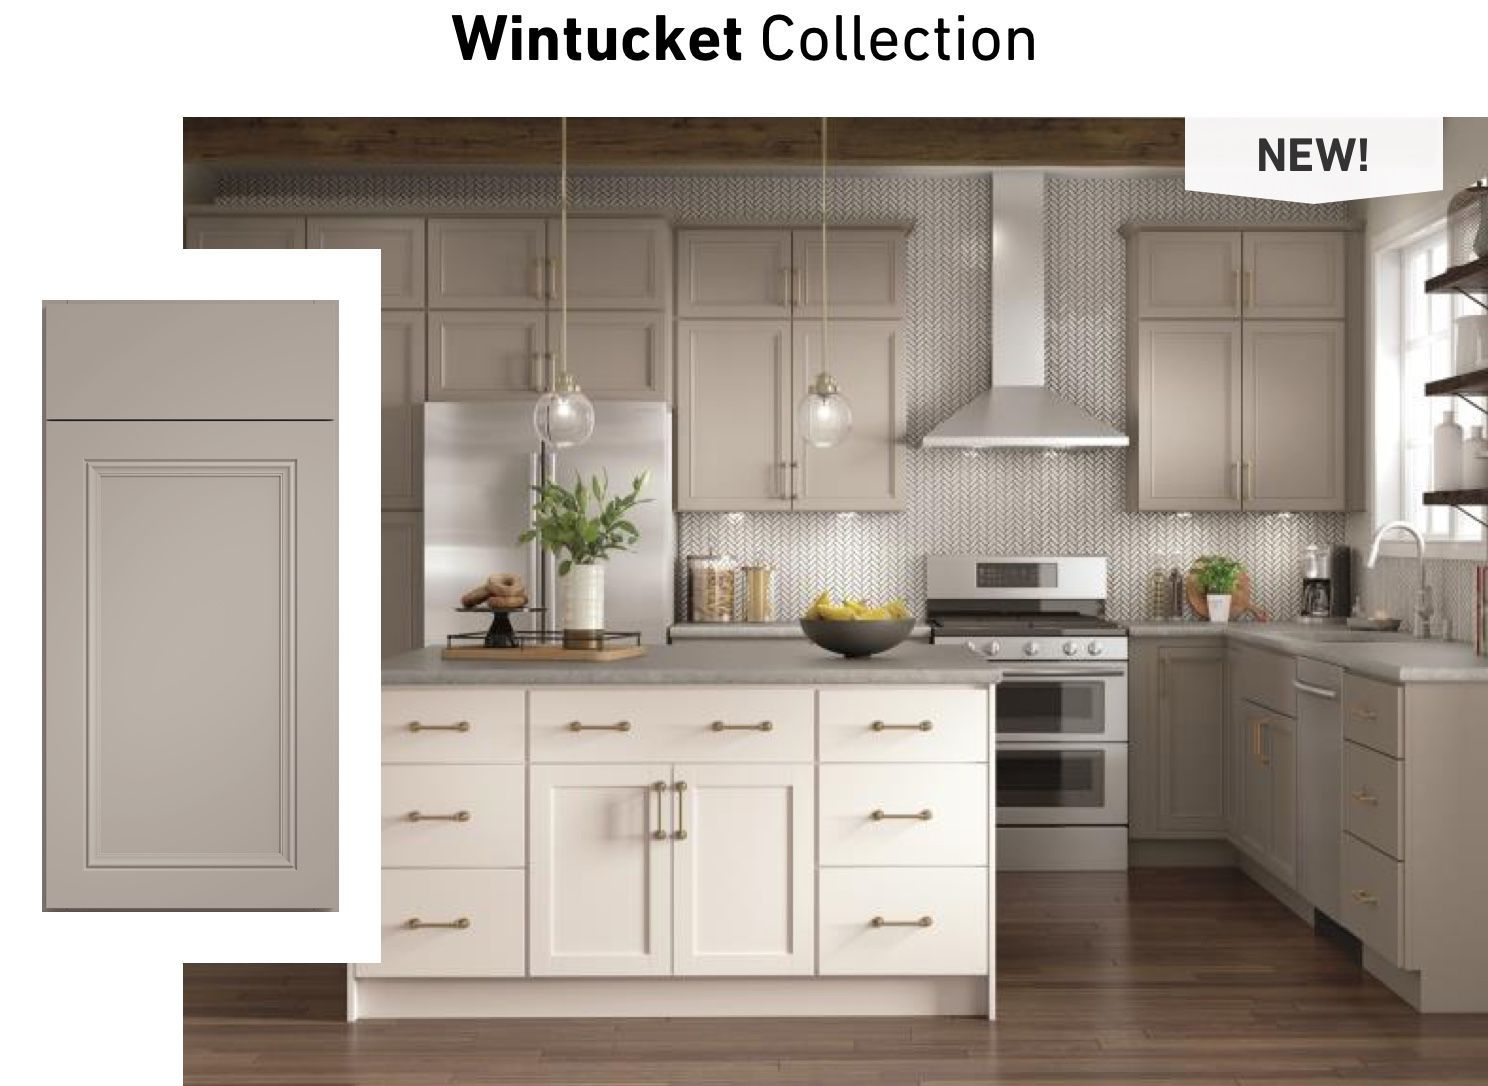 A Kitchen Featuring The Wintucket Collection Kitchen Cabinets Lowes Kitchen Cabinets Kitchen Design